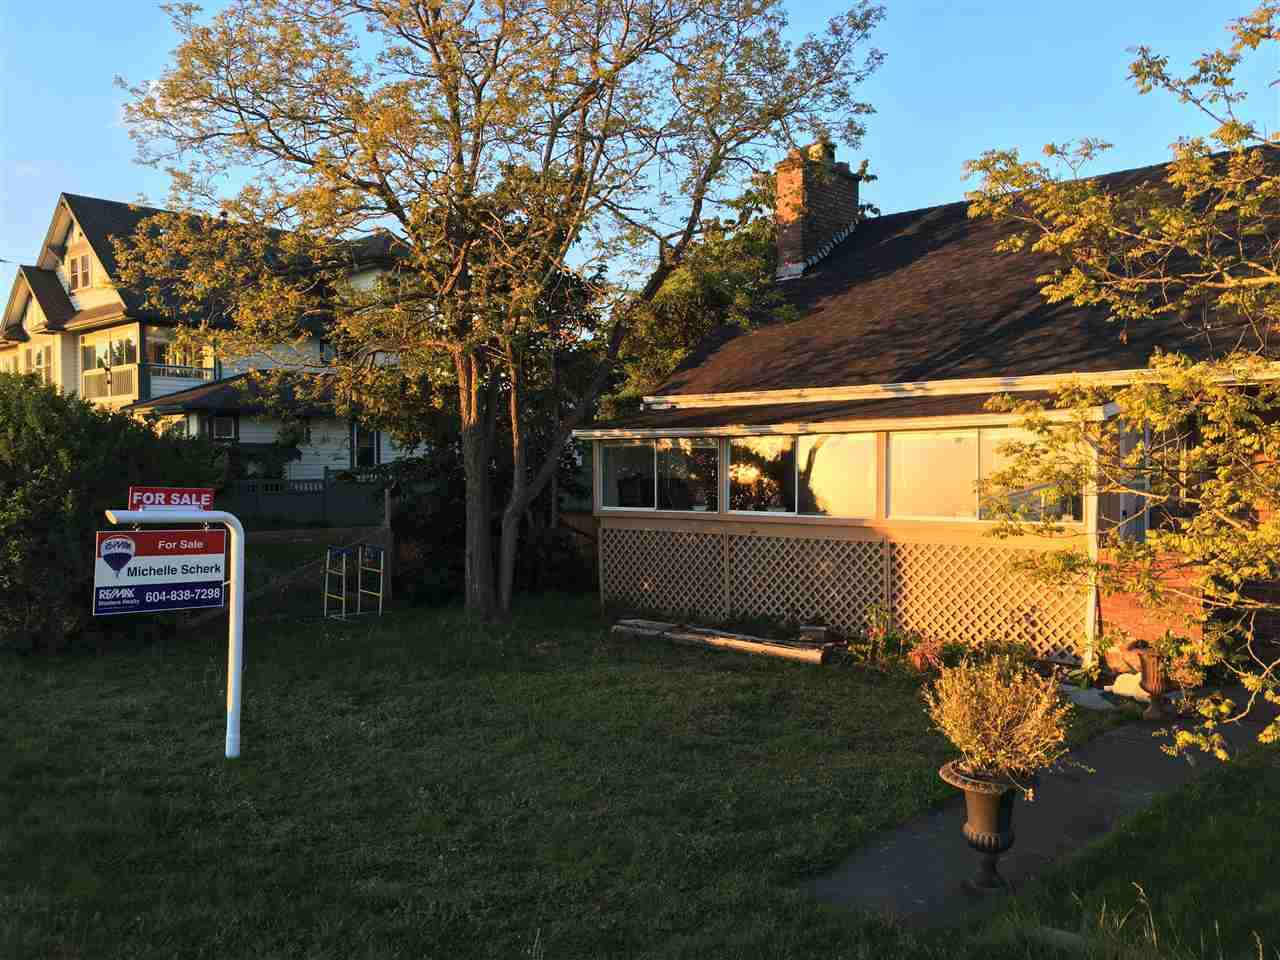 Photo 5: 2954 O'HARA LANE in Surrey: Crescent Bch Ocean Pk. House for sale (South Surrey White Rock)  : MLS® # R2065012